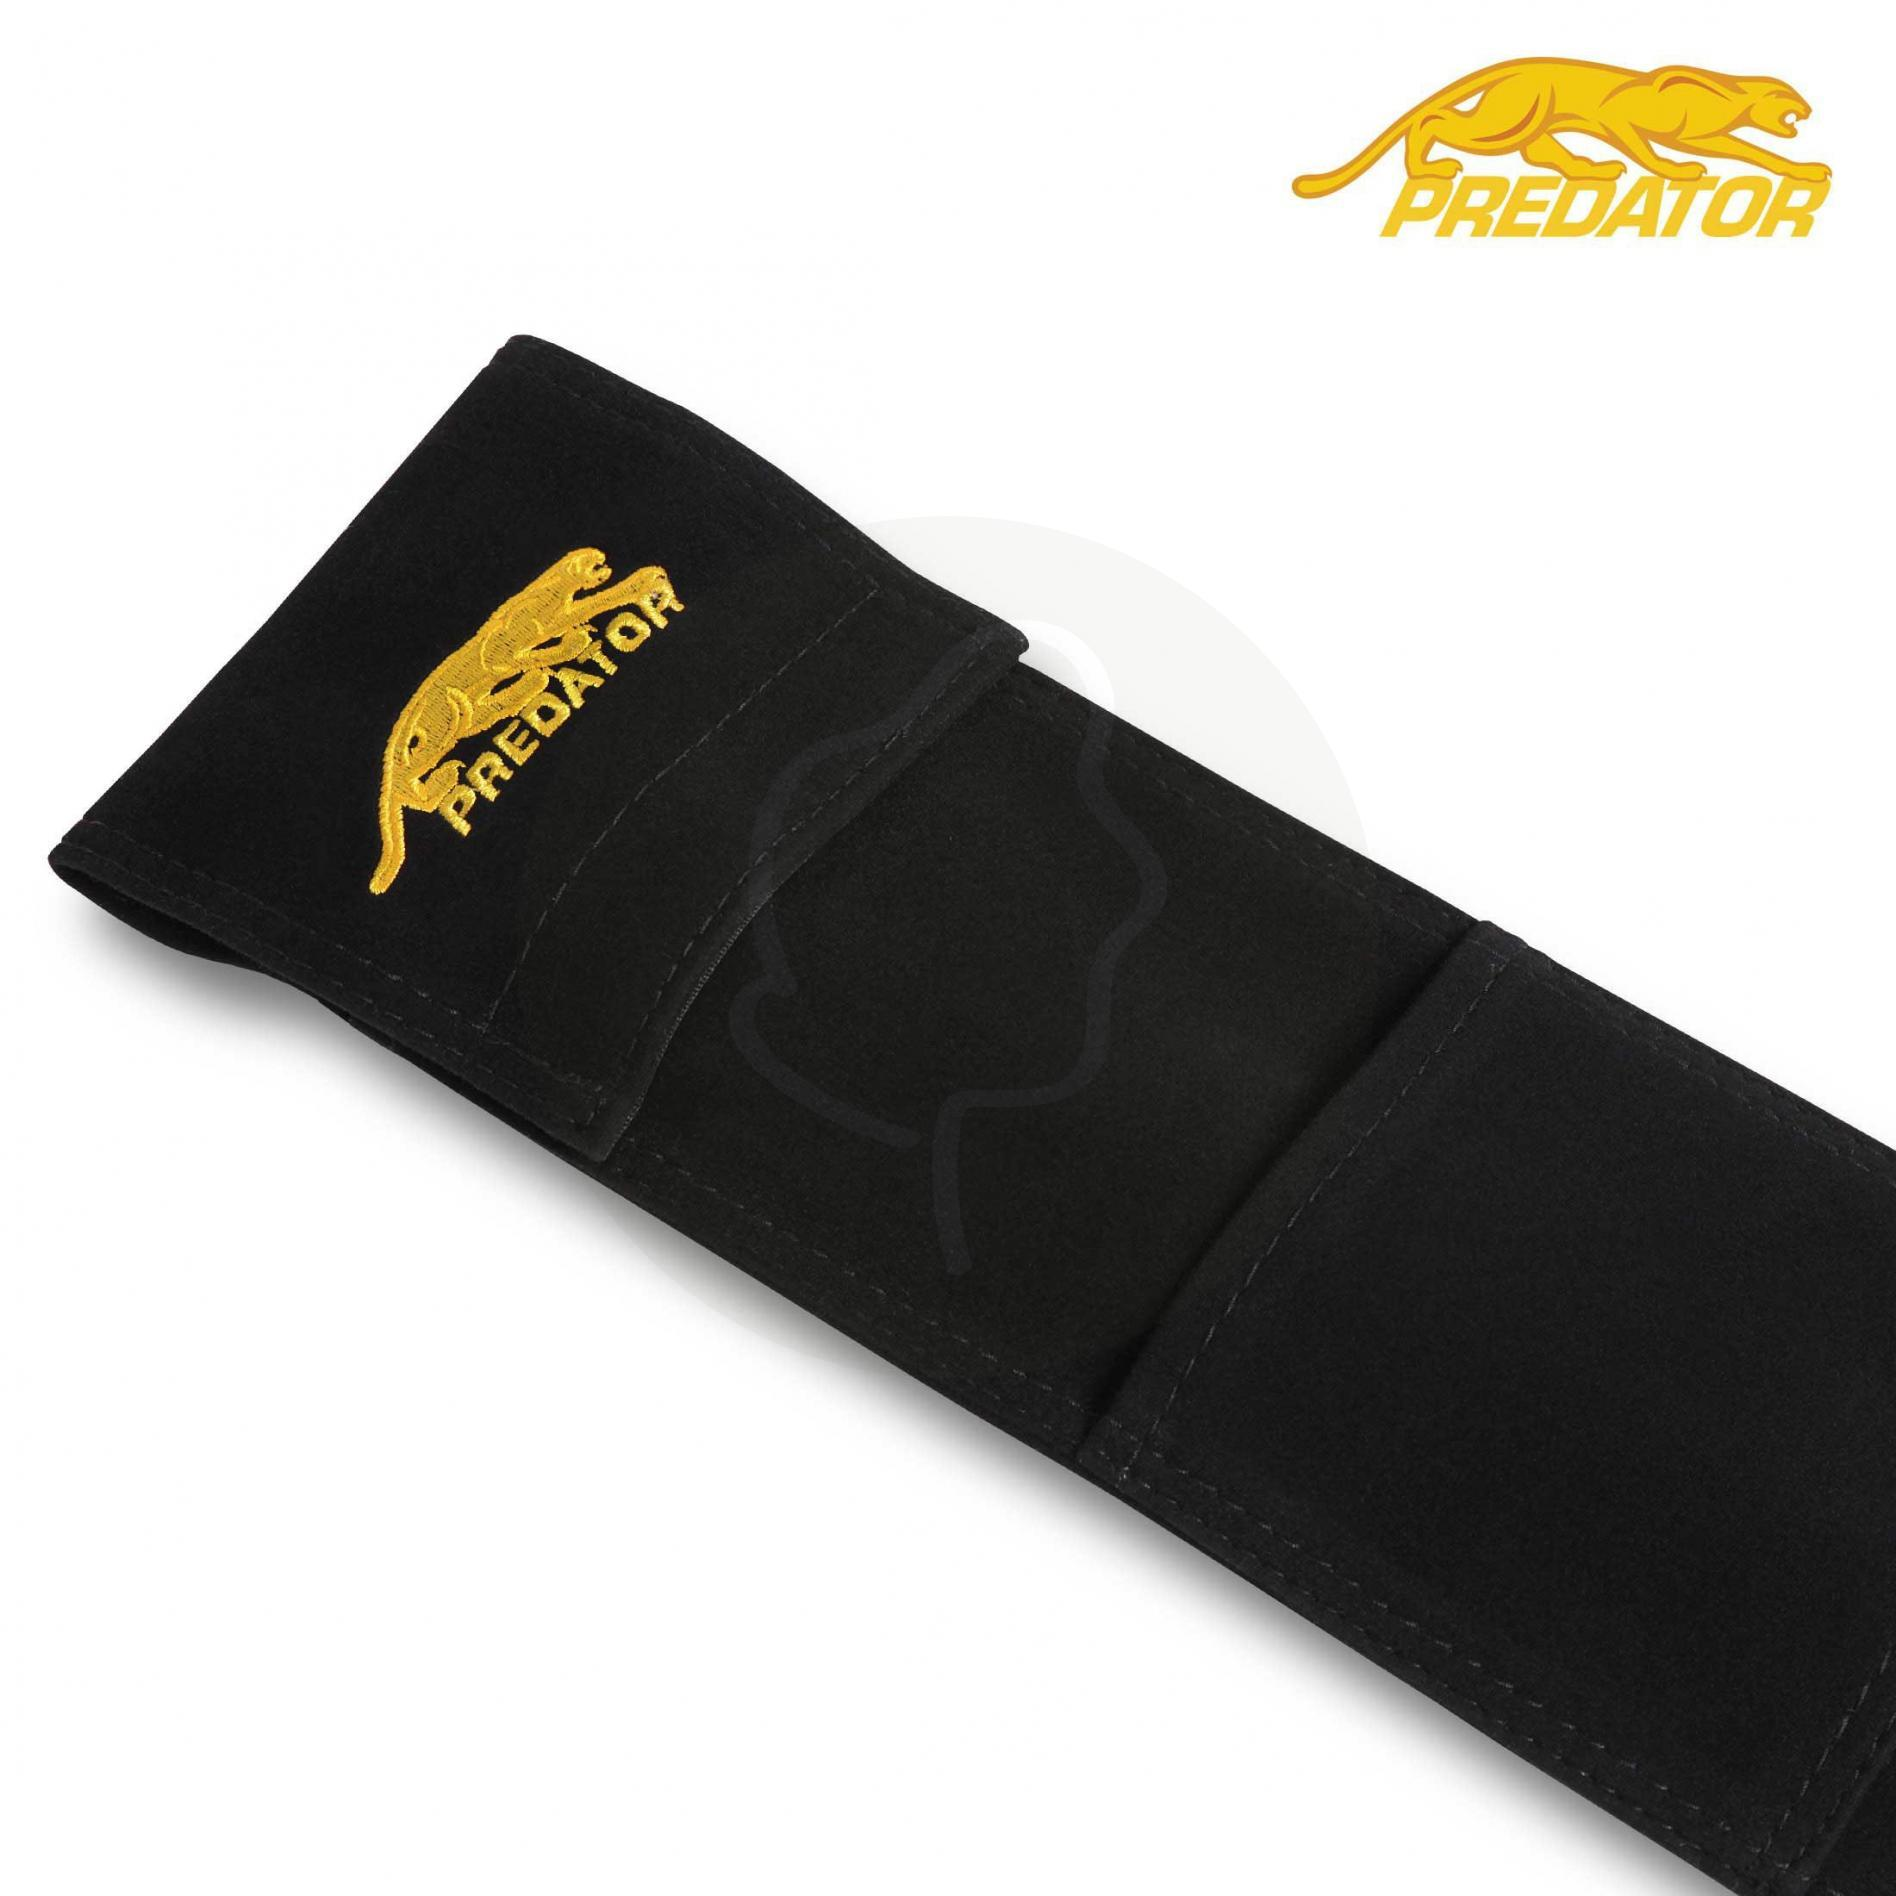 Кий Predator Sport II Ice Sport Grip 314³ 2PC Пул 19oz